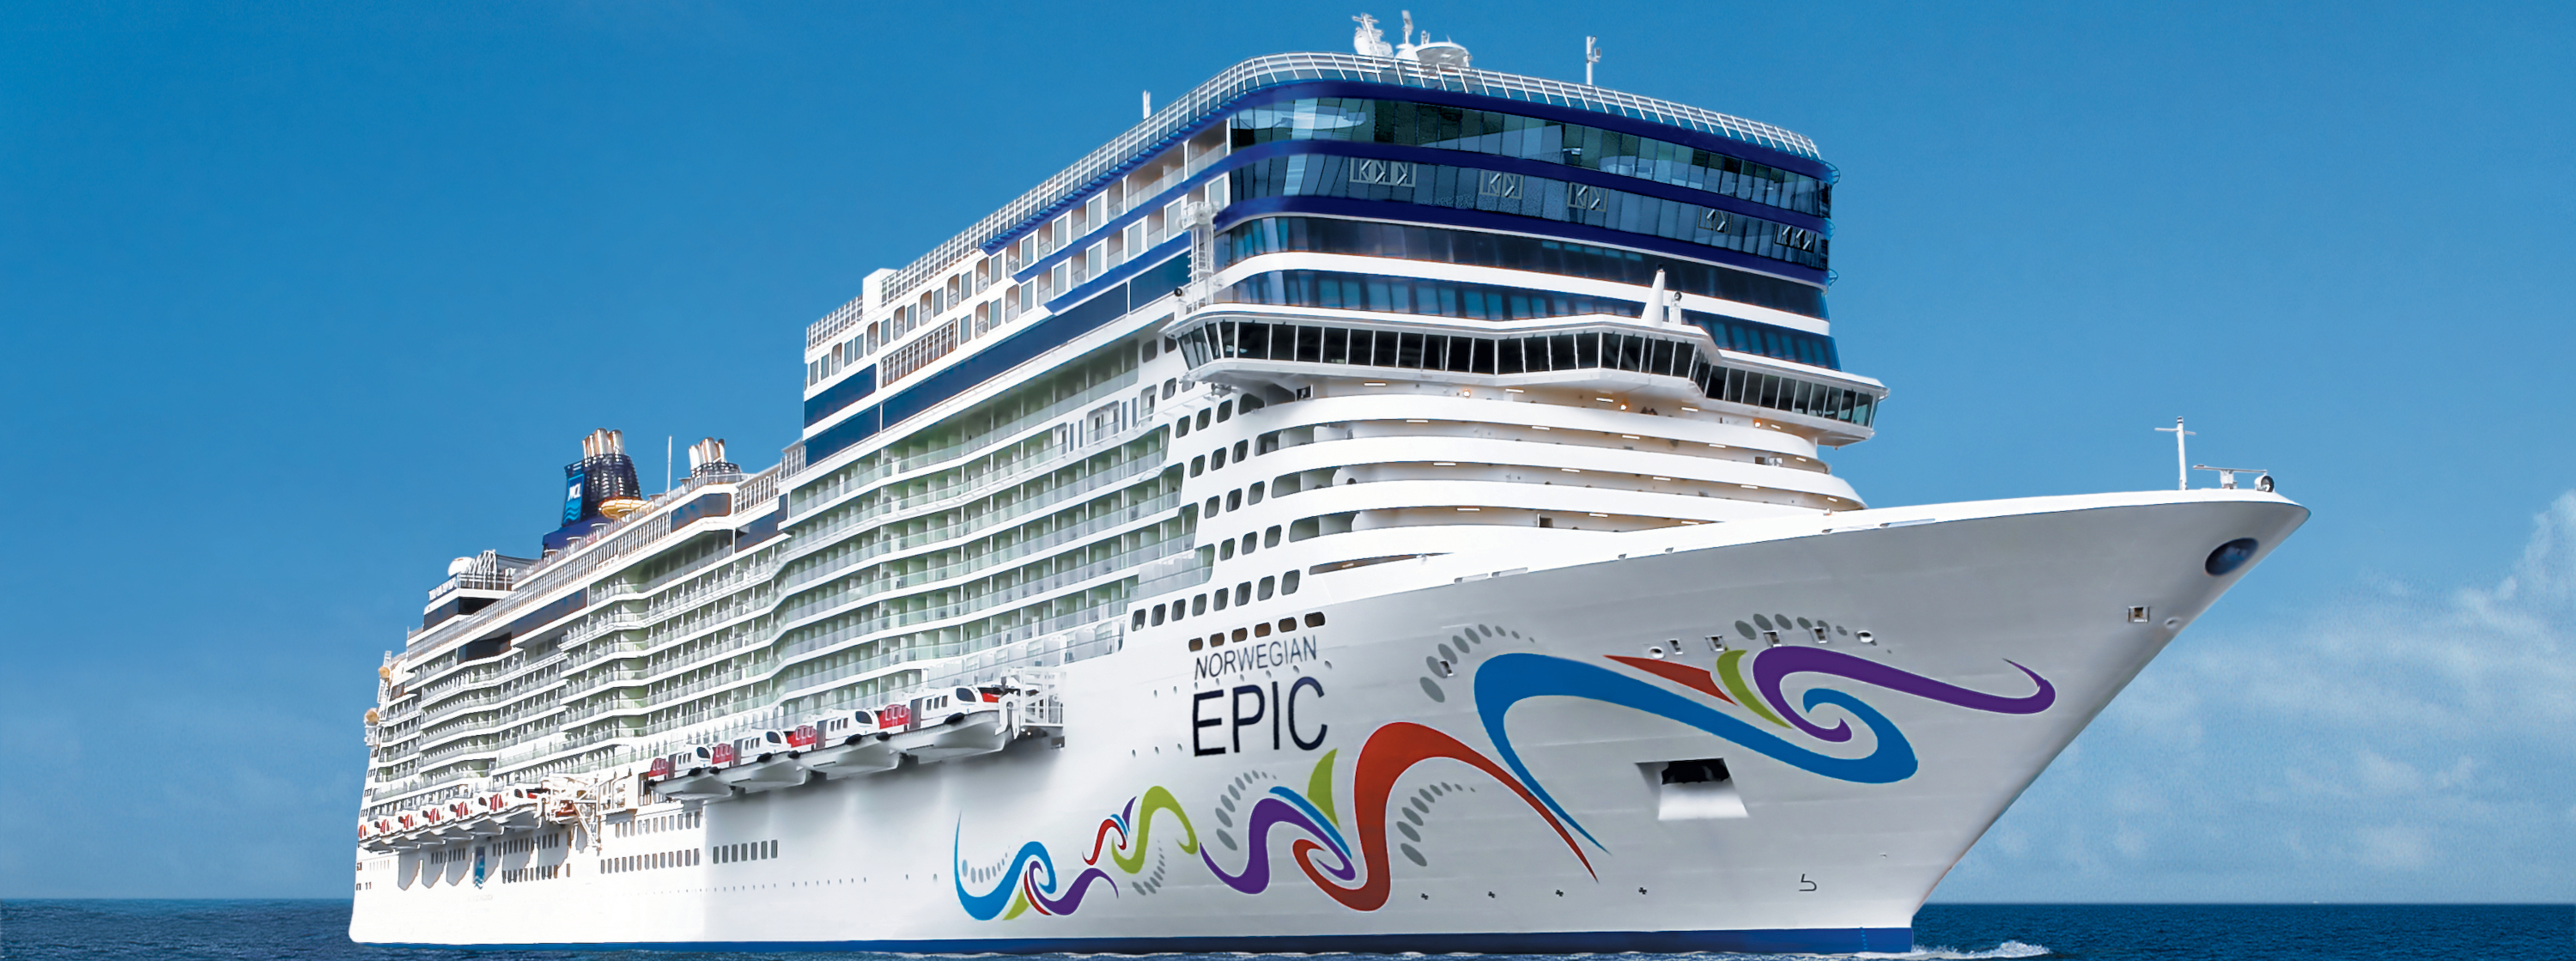 Western Mediterranean Cruise on Norwegian Epic